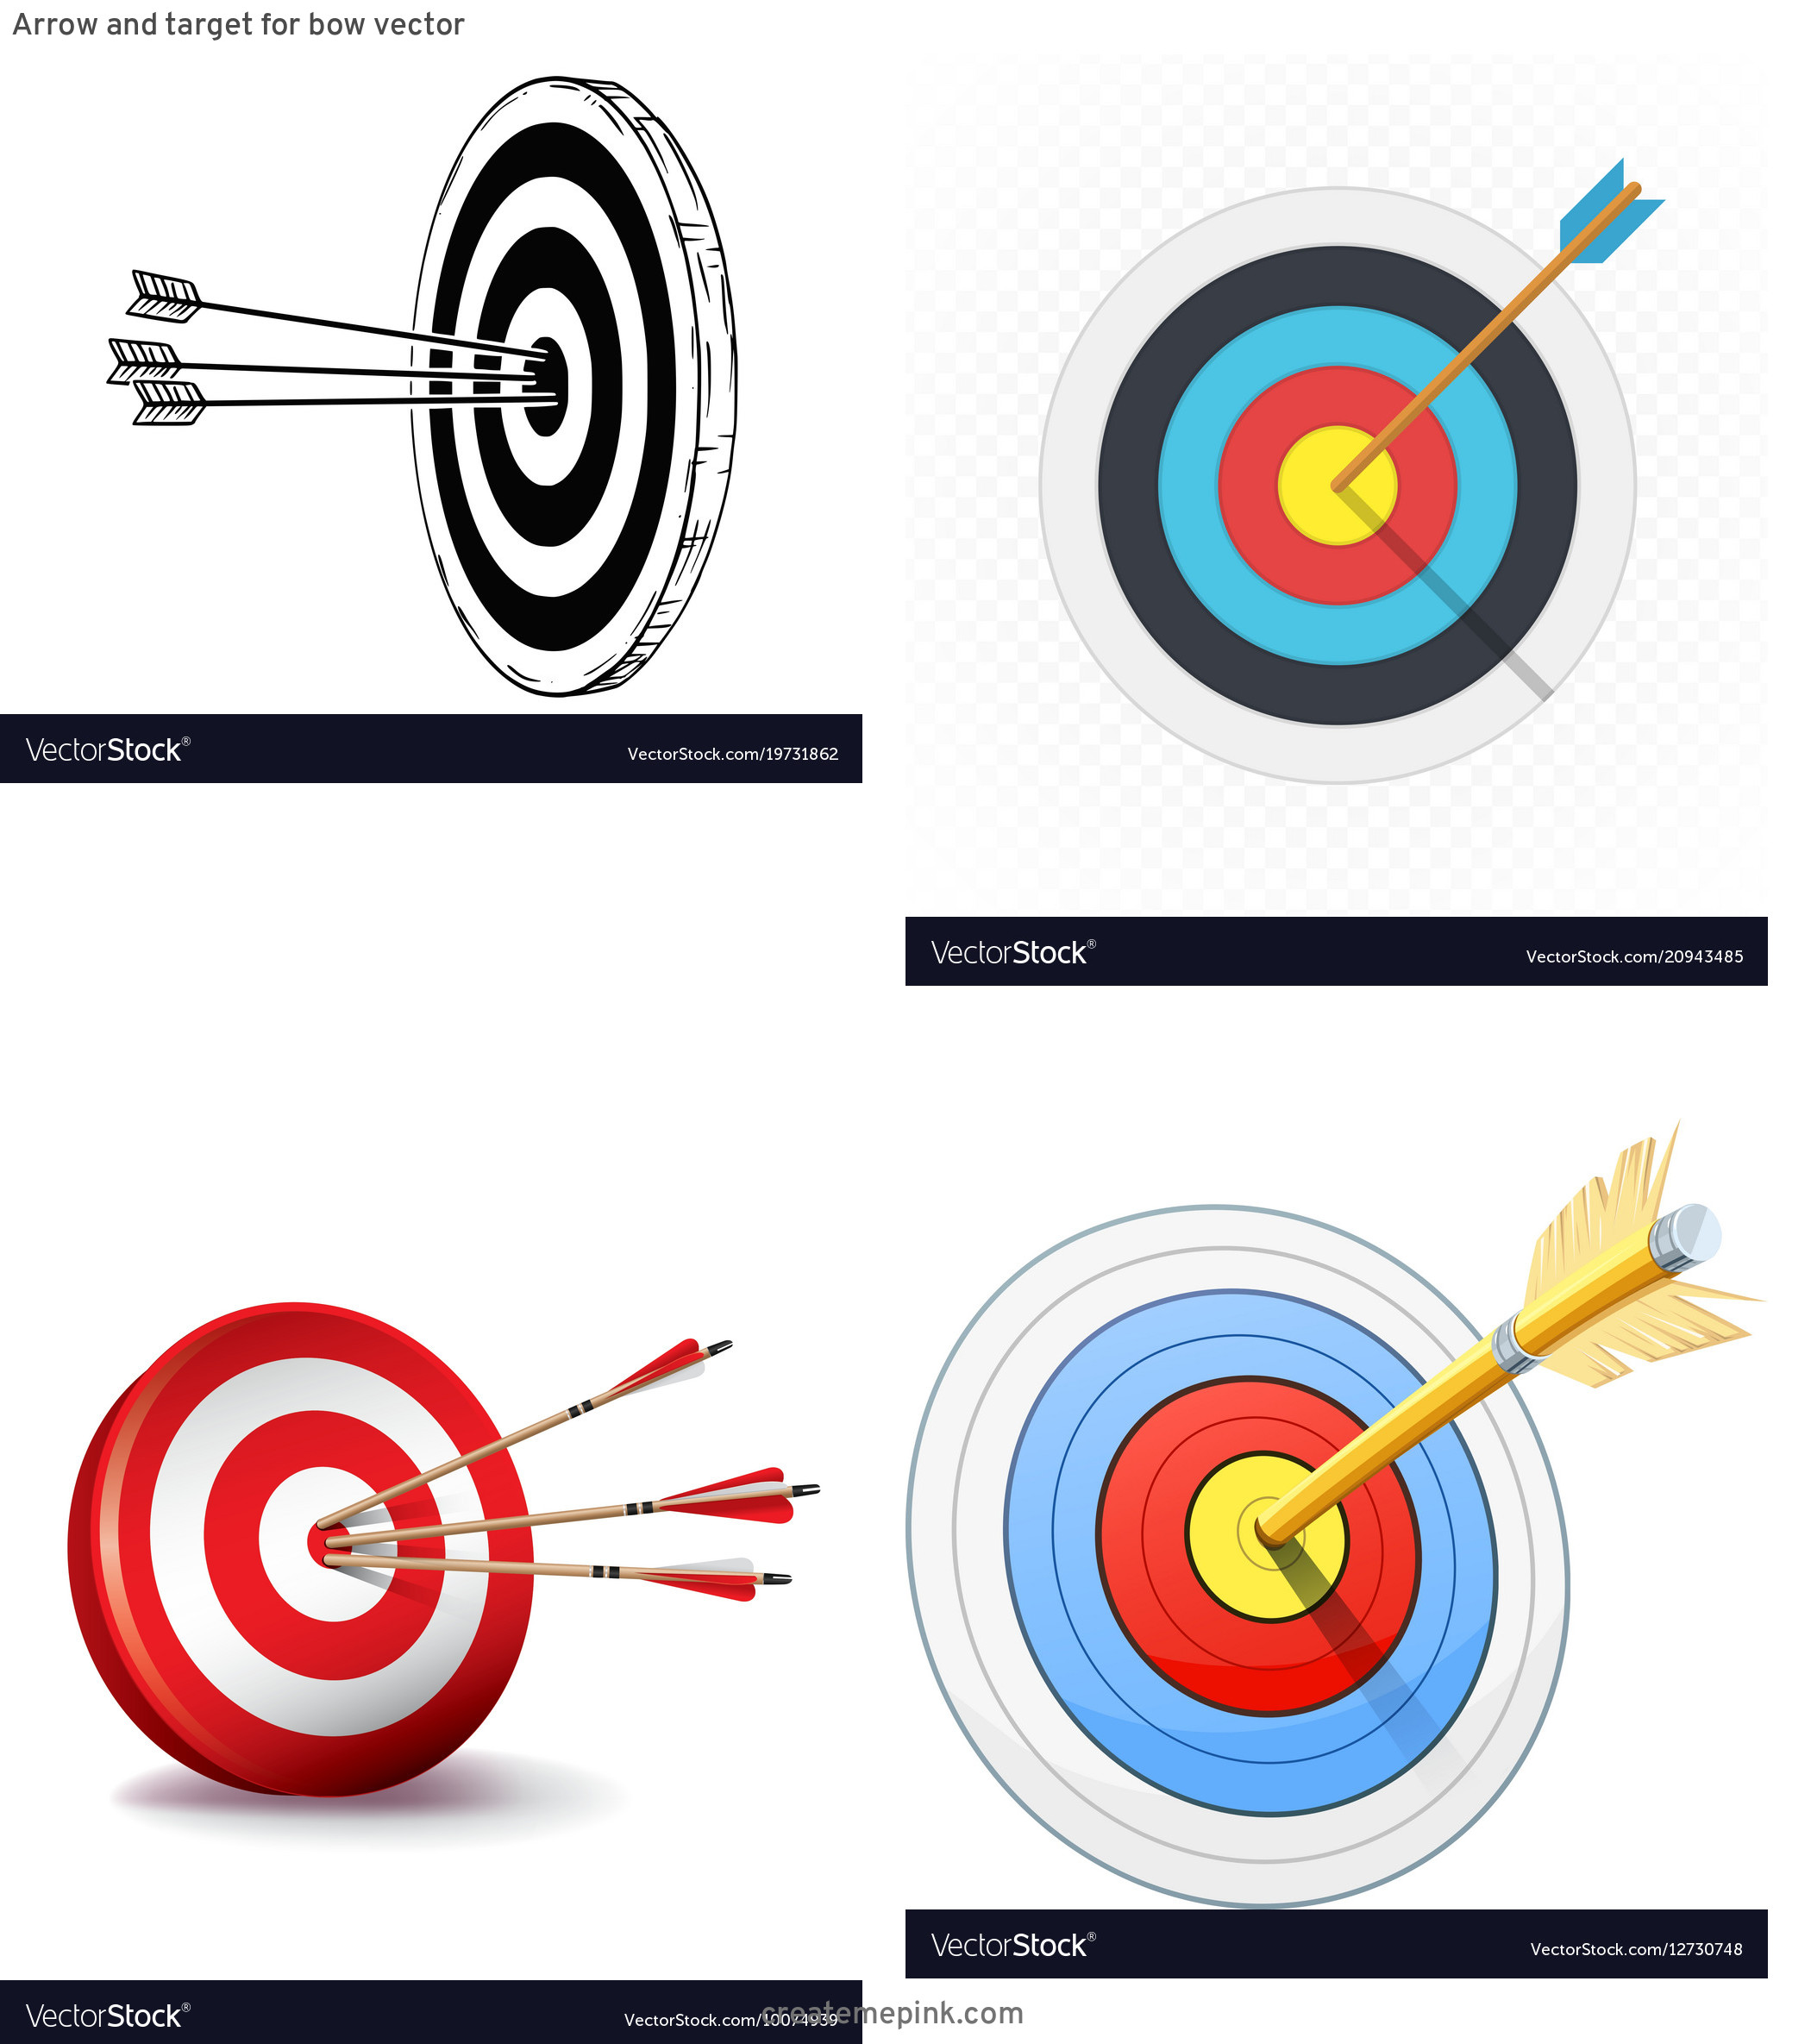 Target Bow And Arrow Vector: Arrow And Target For Bow Vector